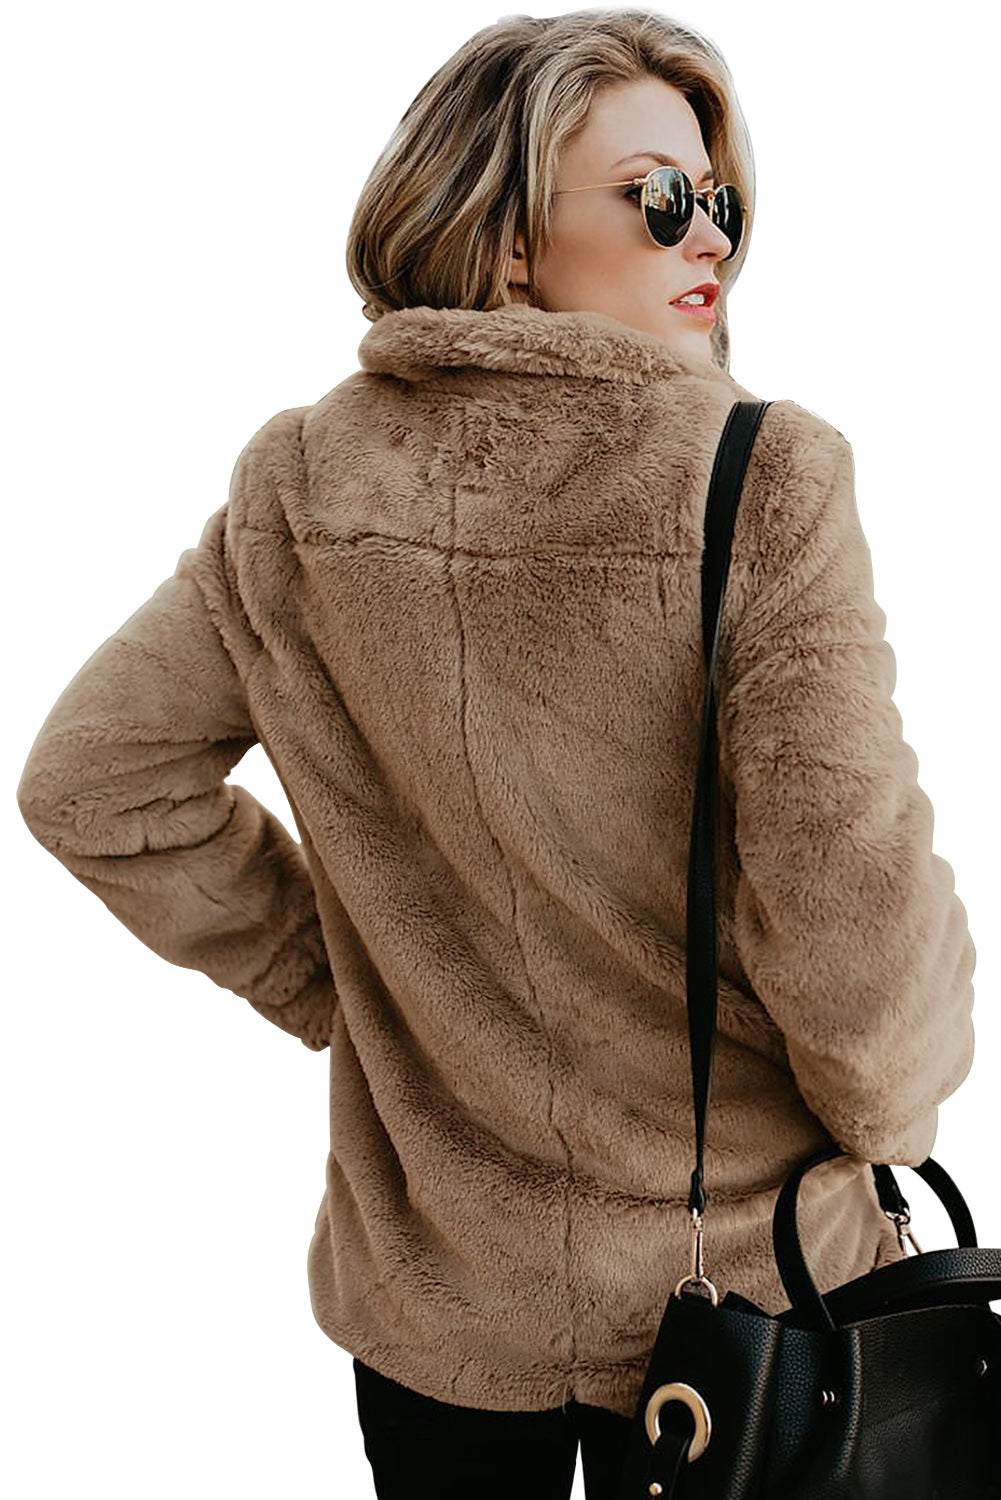 Brown Pocket Style Fluffy Winter Coat Suits & Coats Discount Designer Fashion Clothes Shoes Bags Women Men Kids Children Black Owned Business